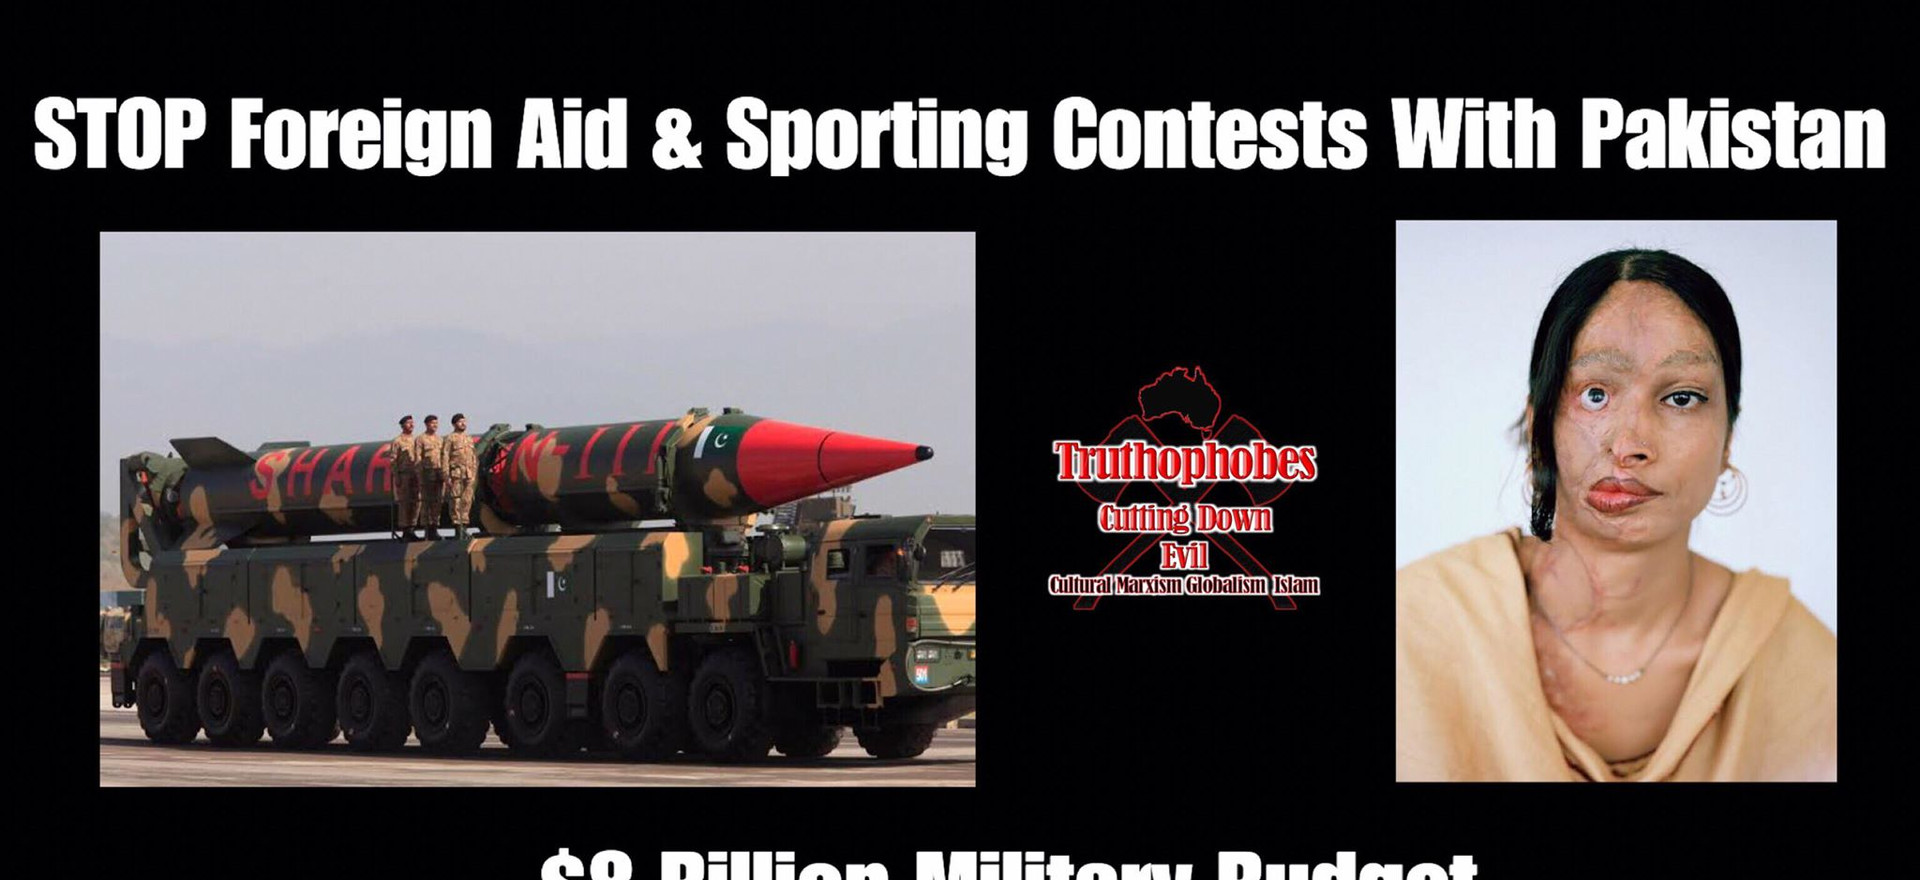 STOP Foreign Aid & Sporting Contests With Pakistan